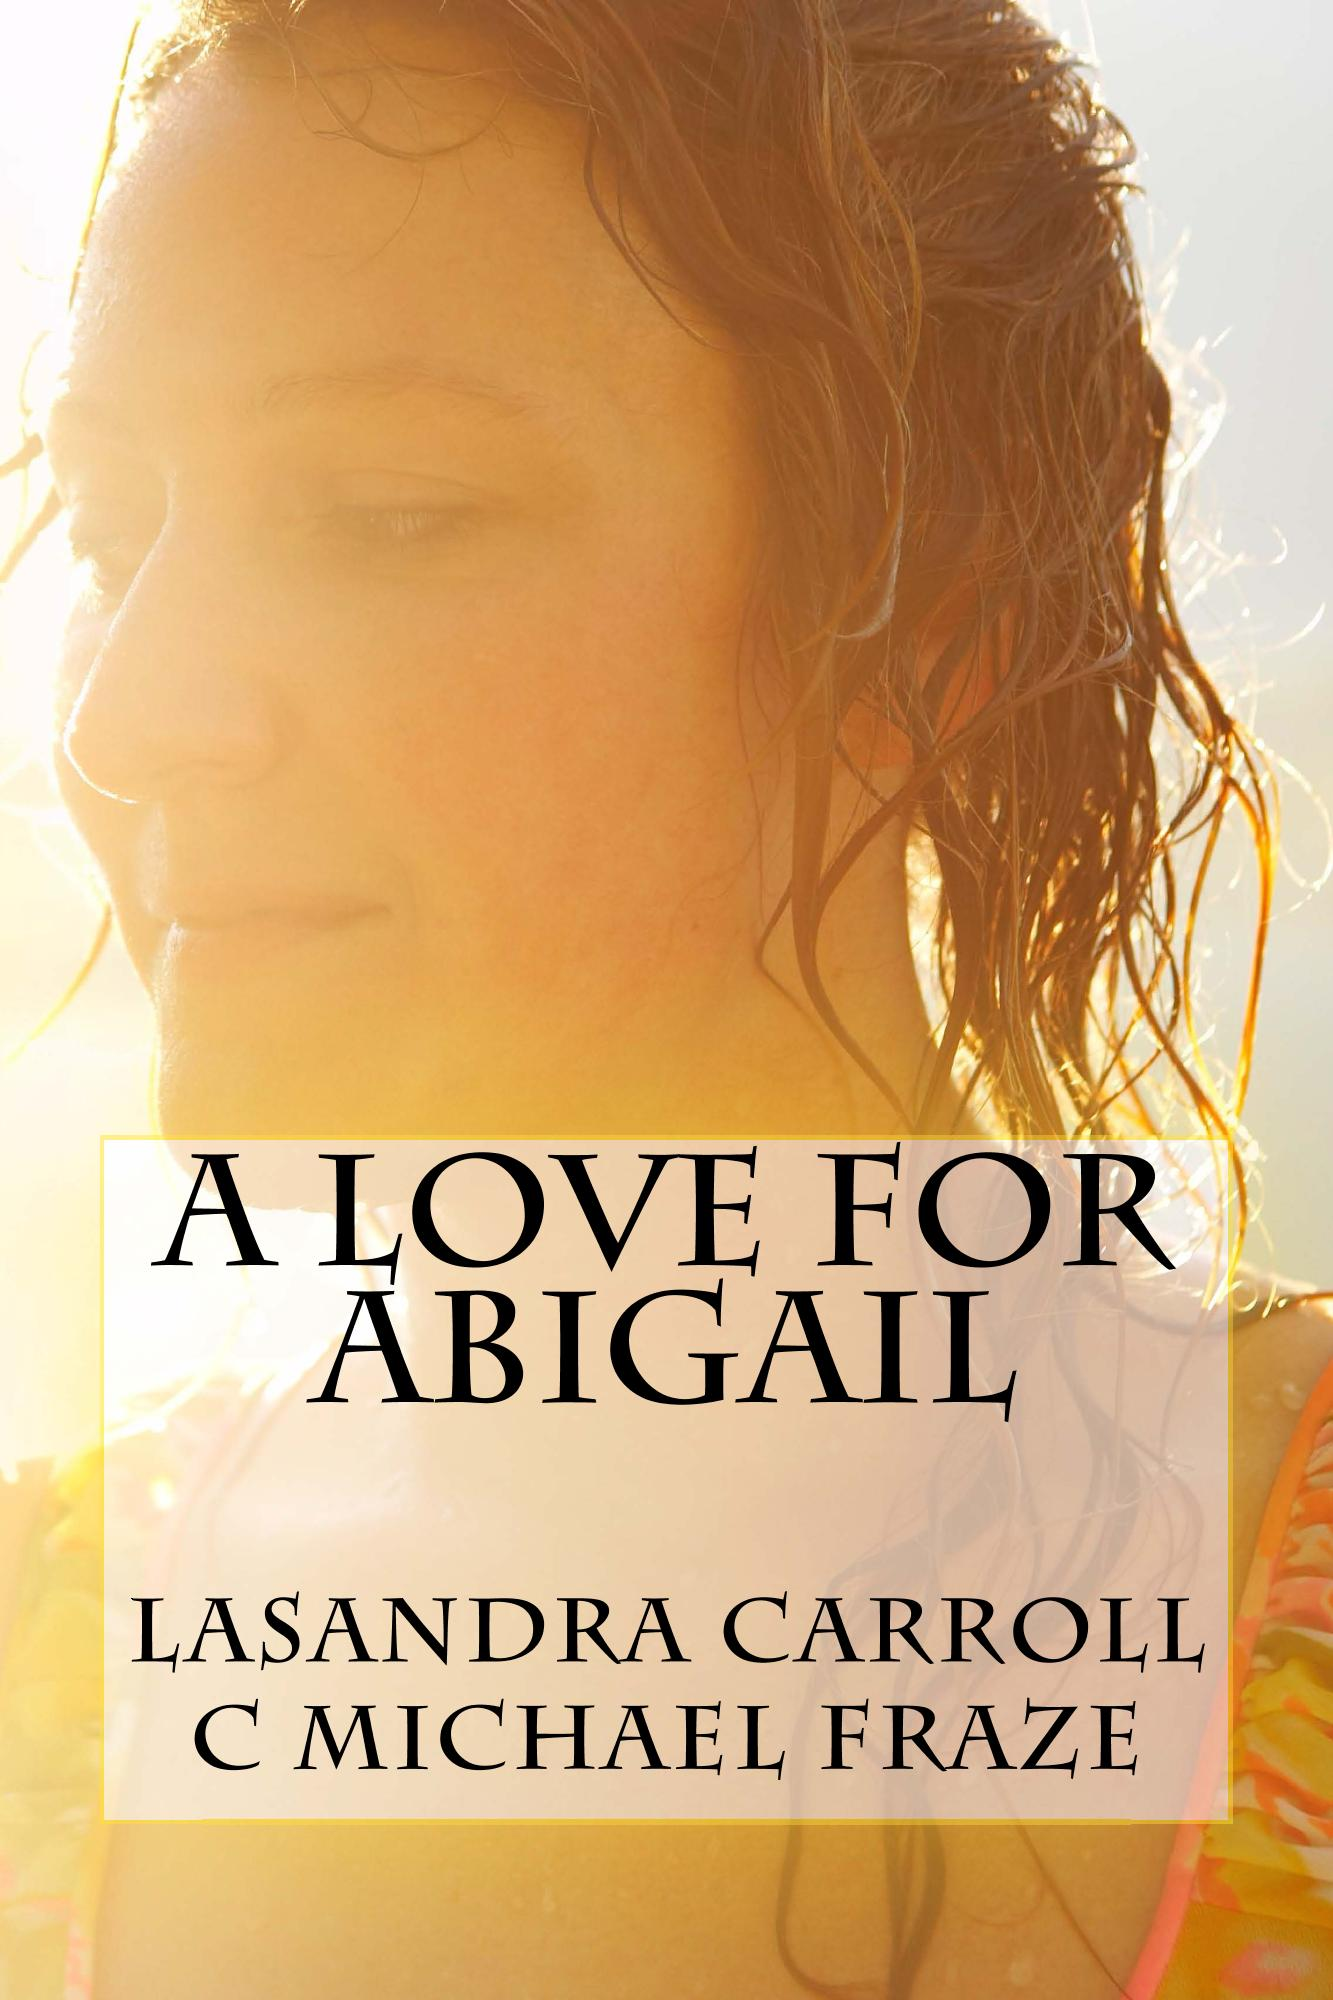 A love for abigail cover for kindle